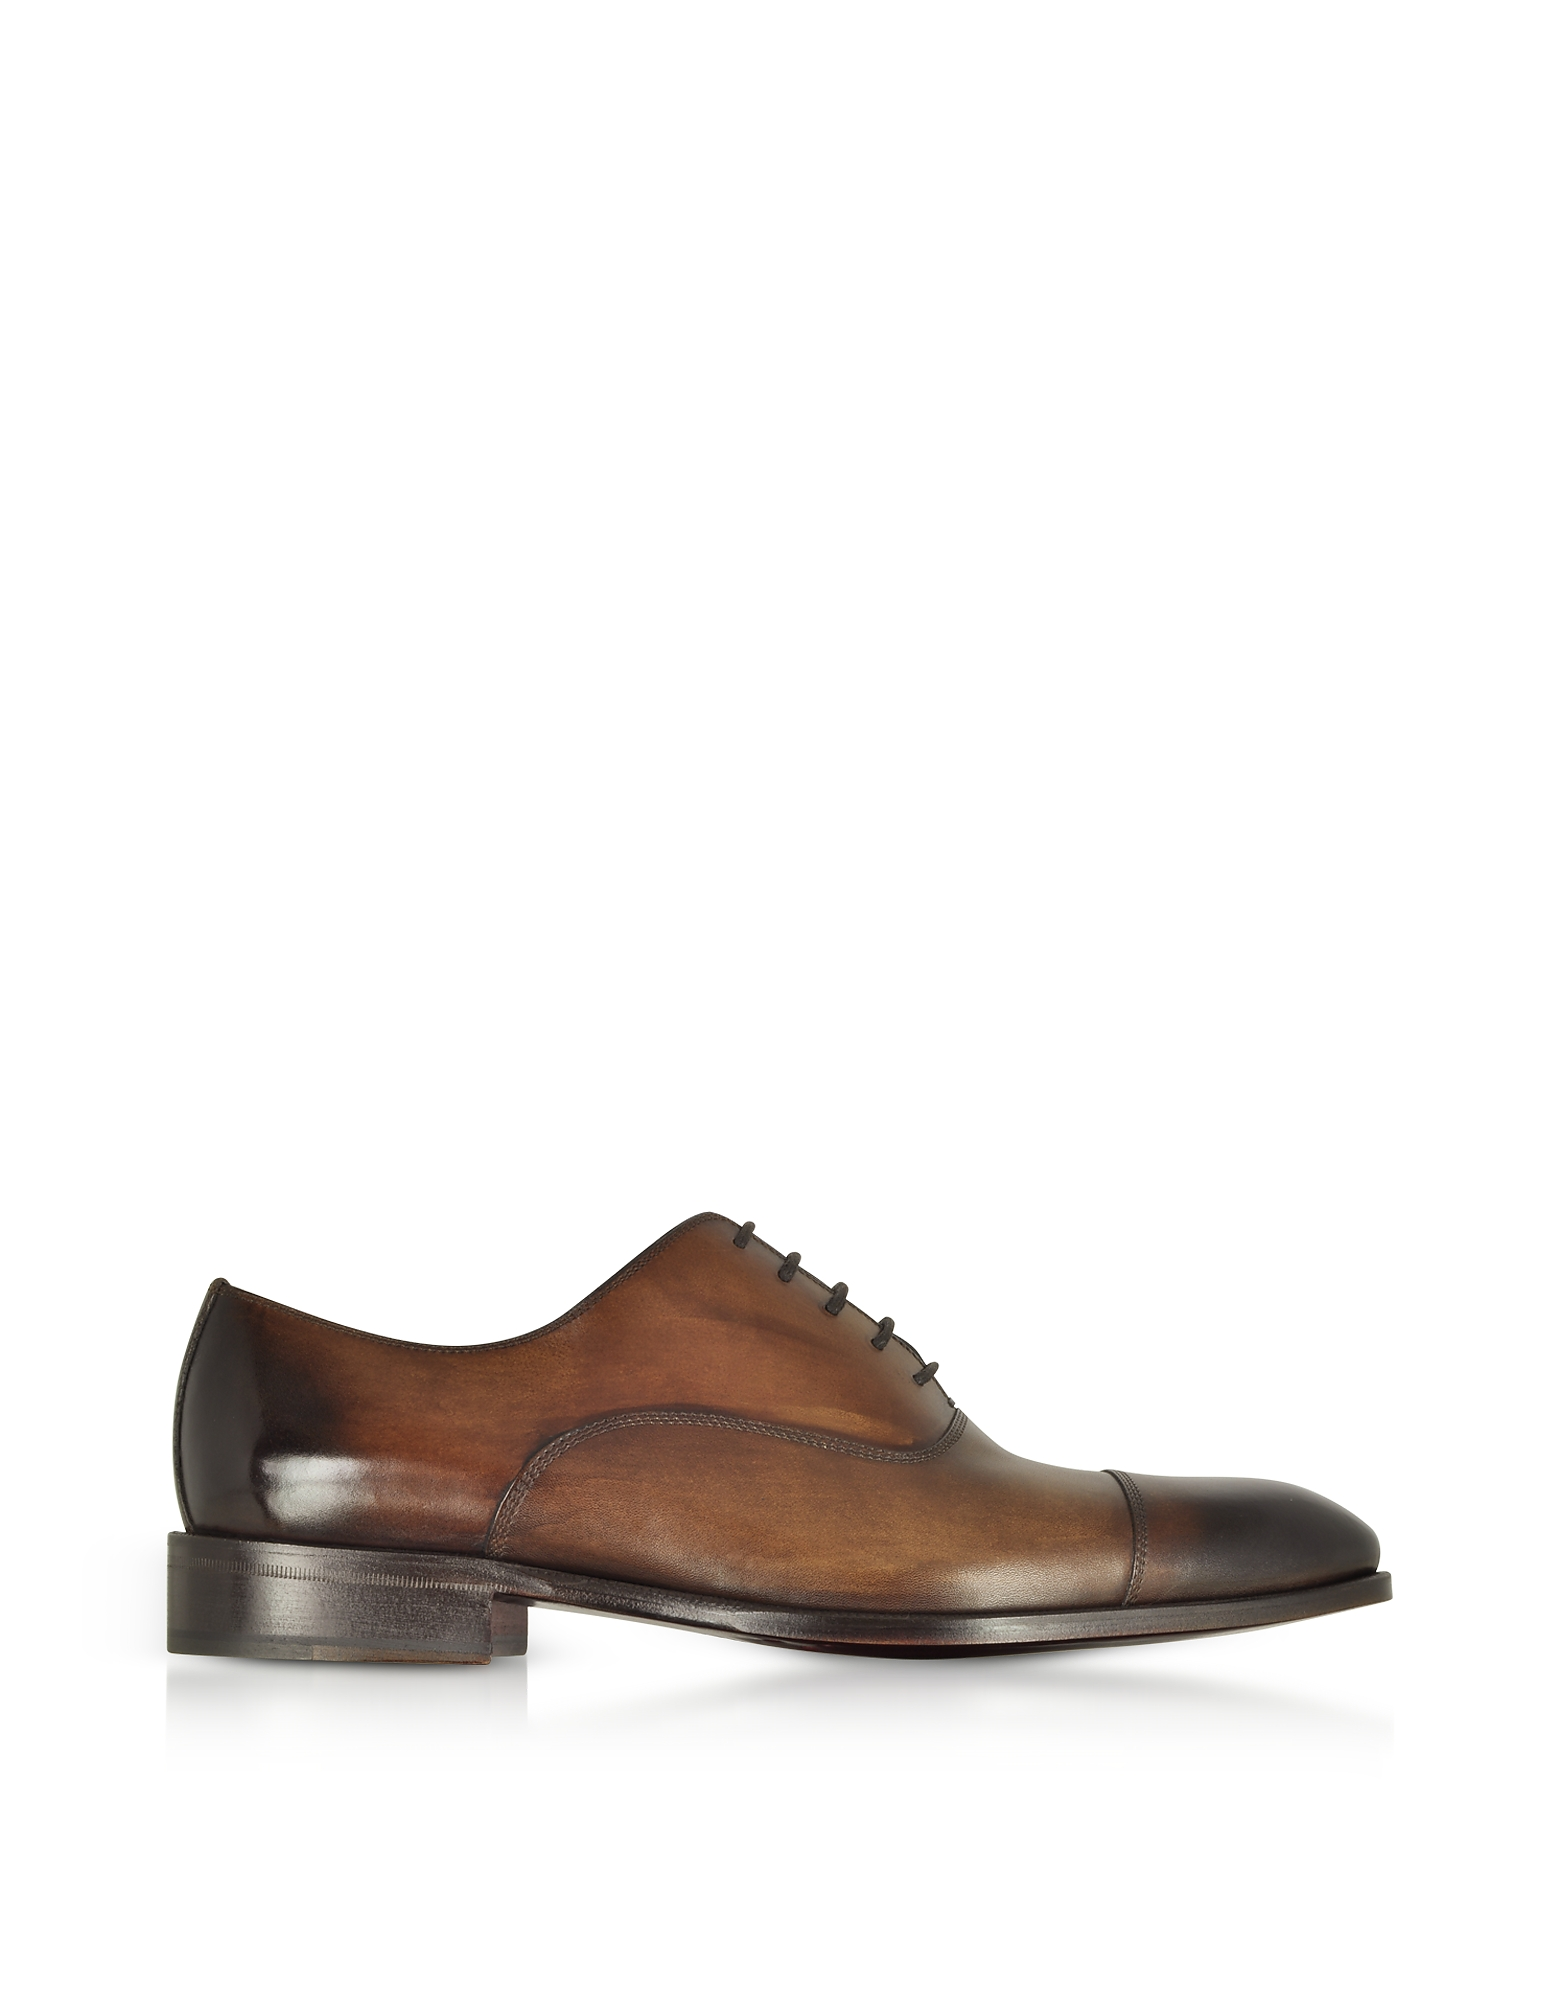 Image of Fratelli Borgioli Designer Shoes, Shaded Dark Brown Leather Oxford Shoes